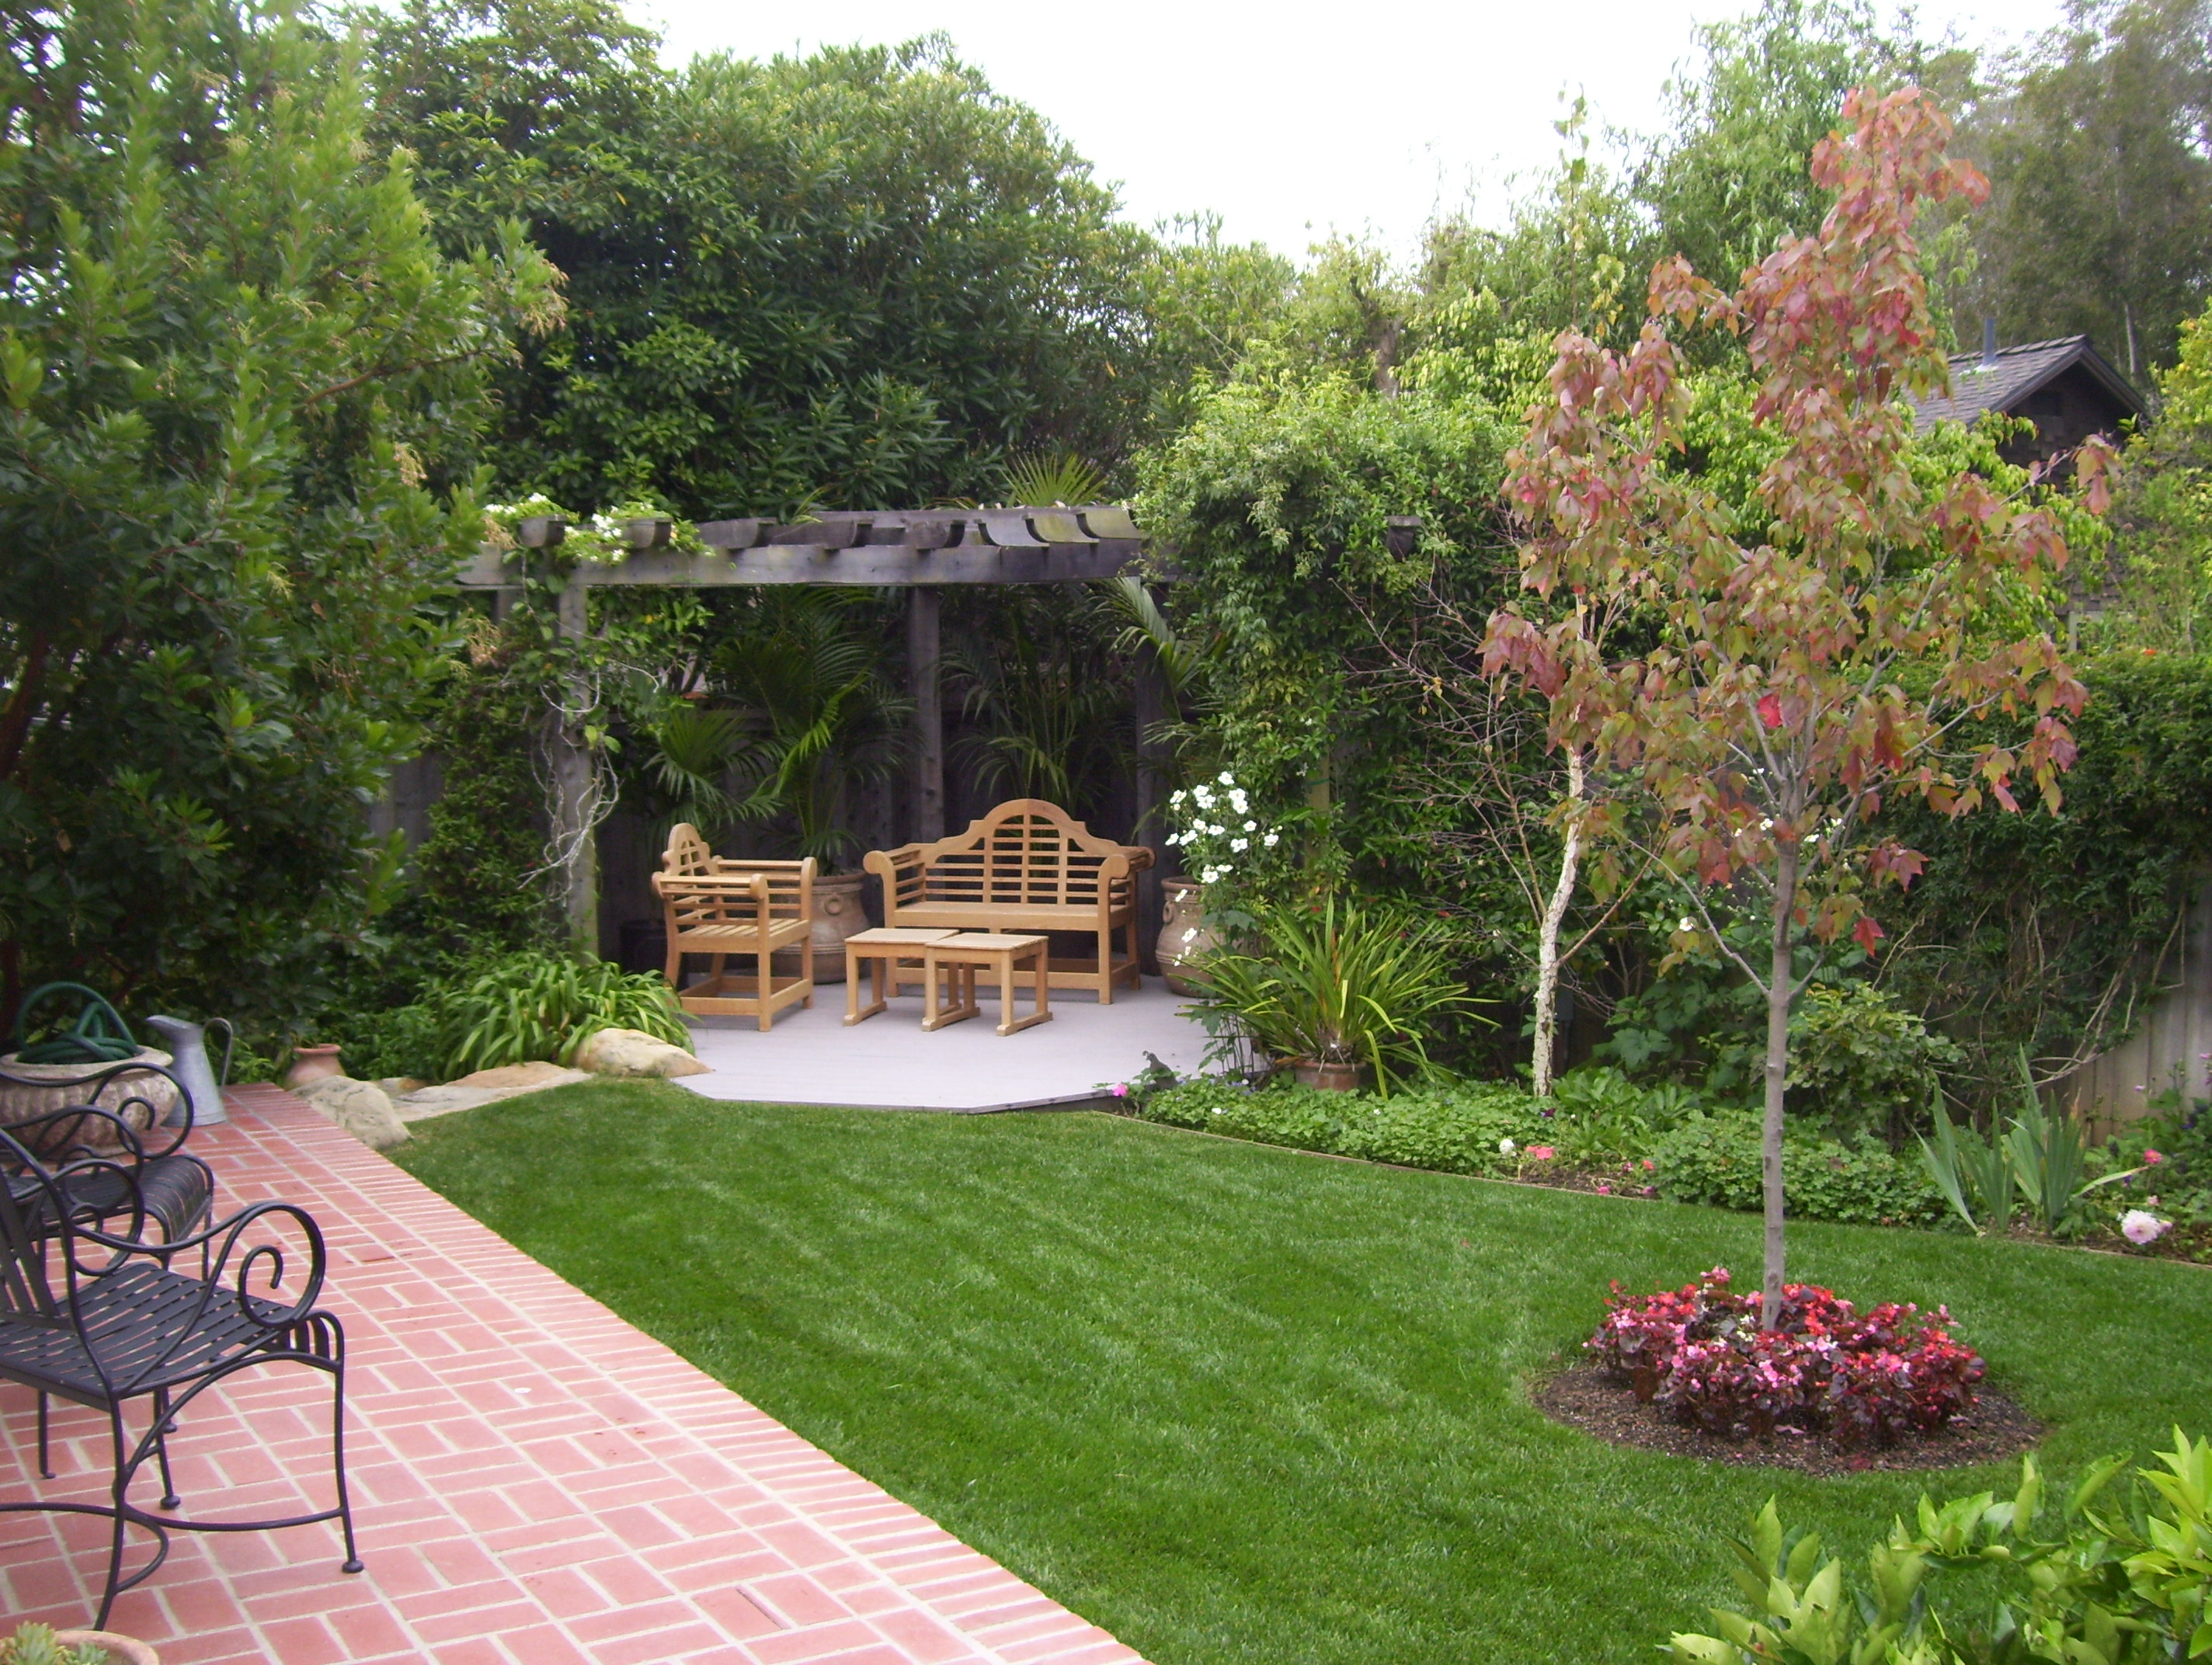 Backyard landscaping ideas santa barbara down to earth for Backyard garden designs